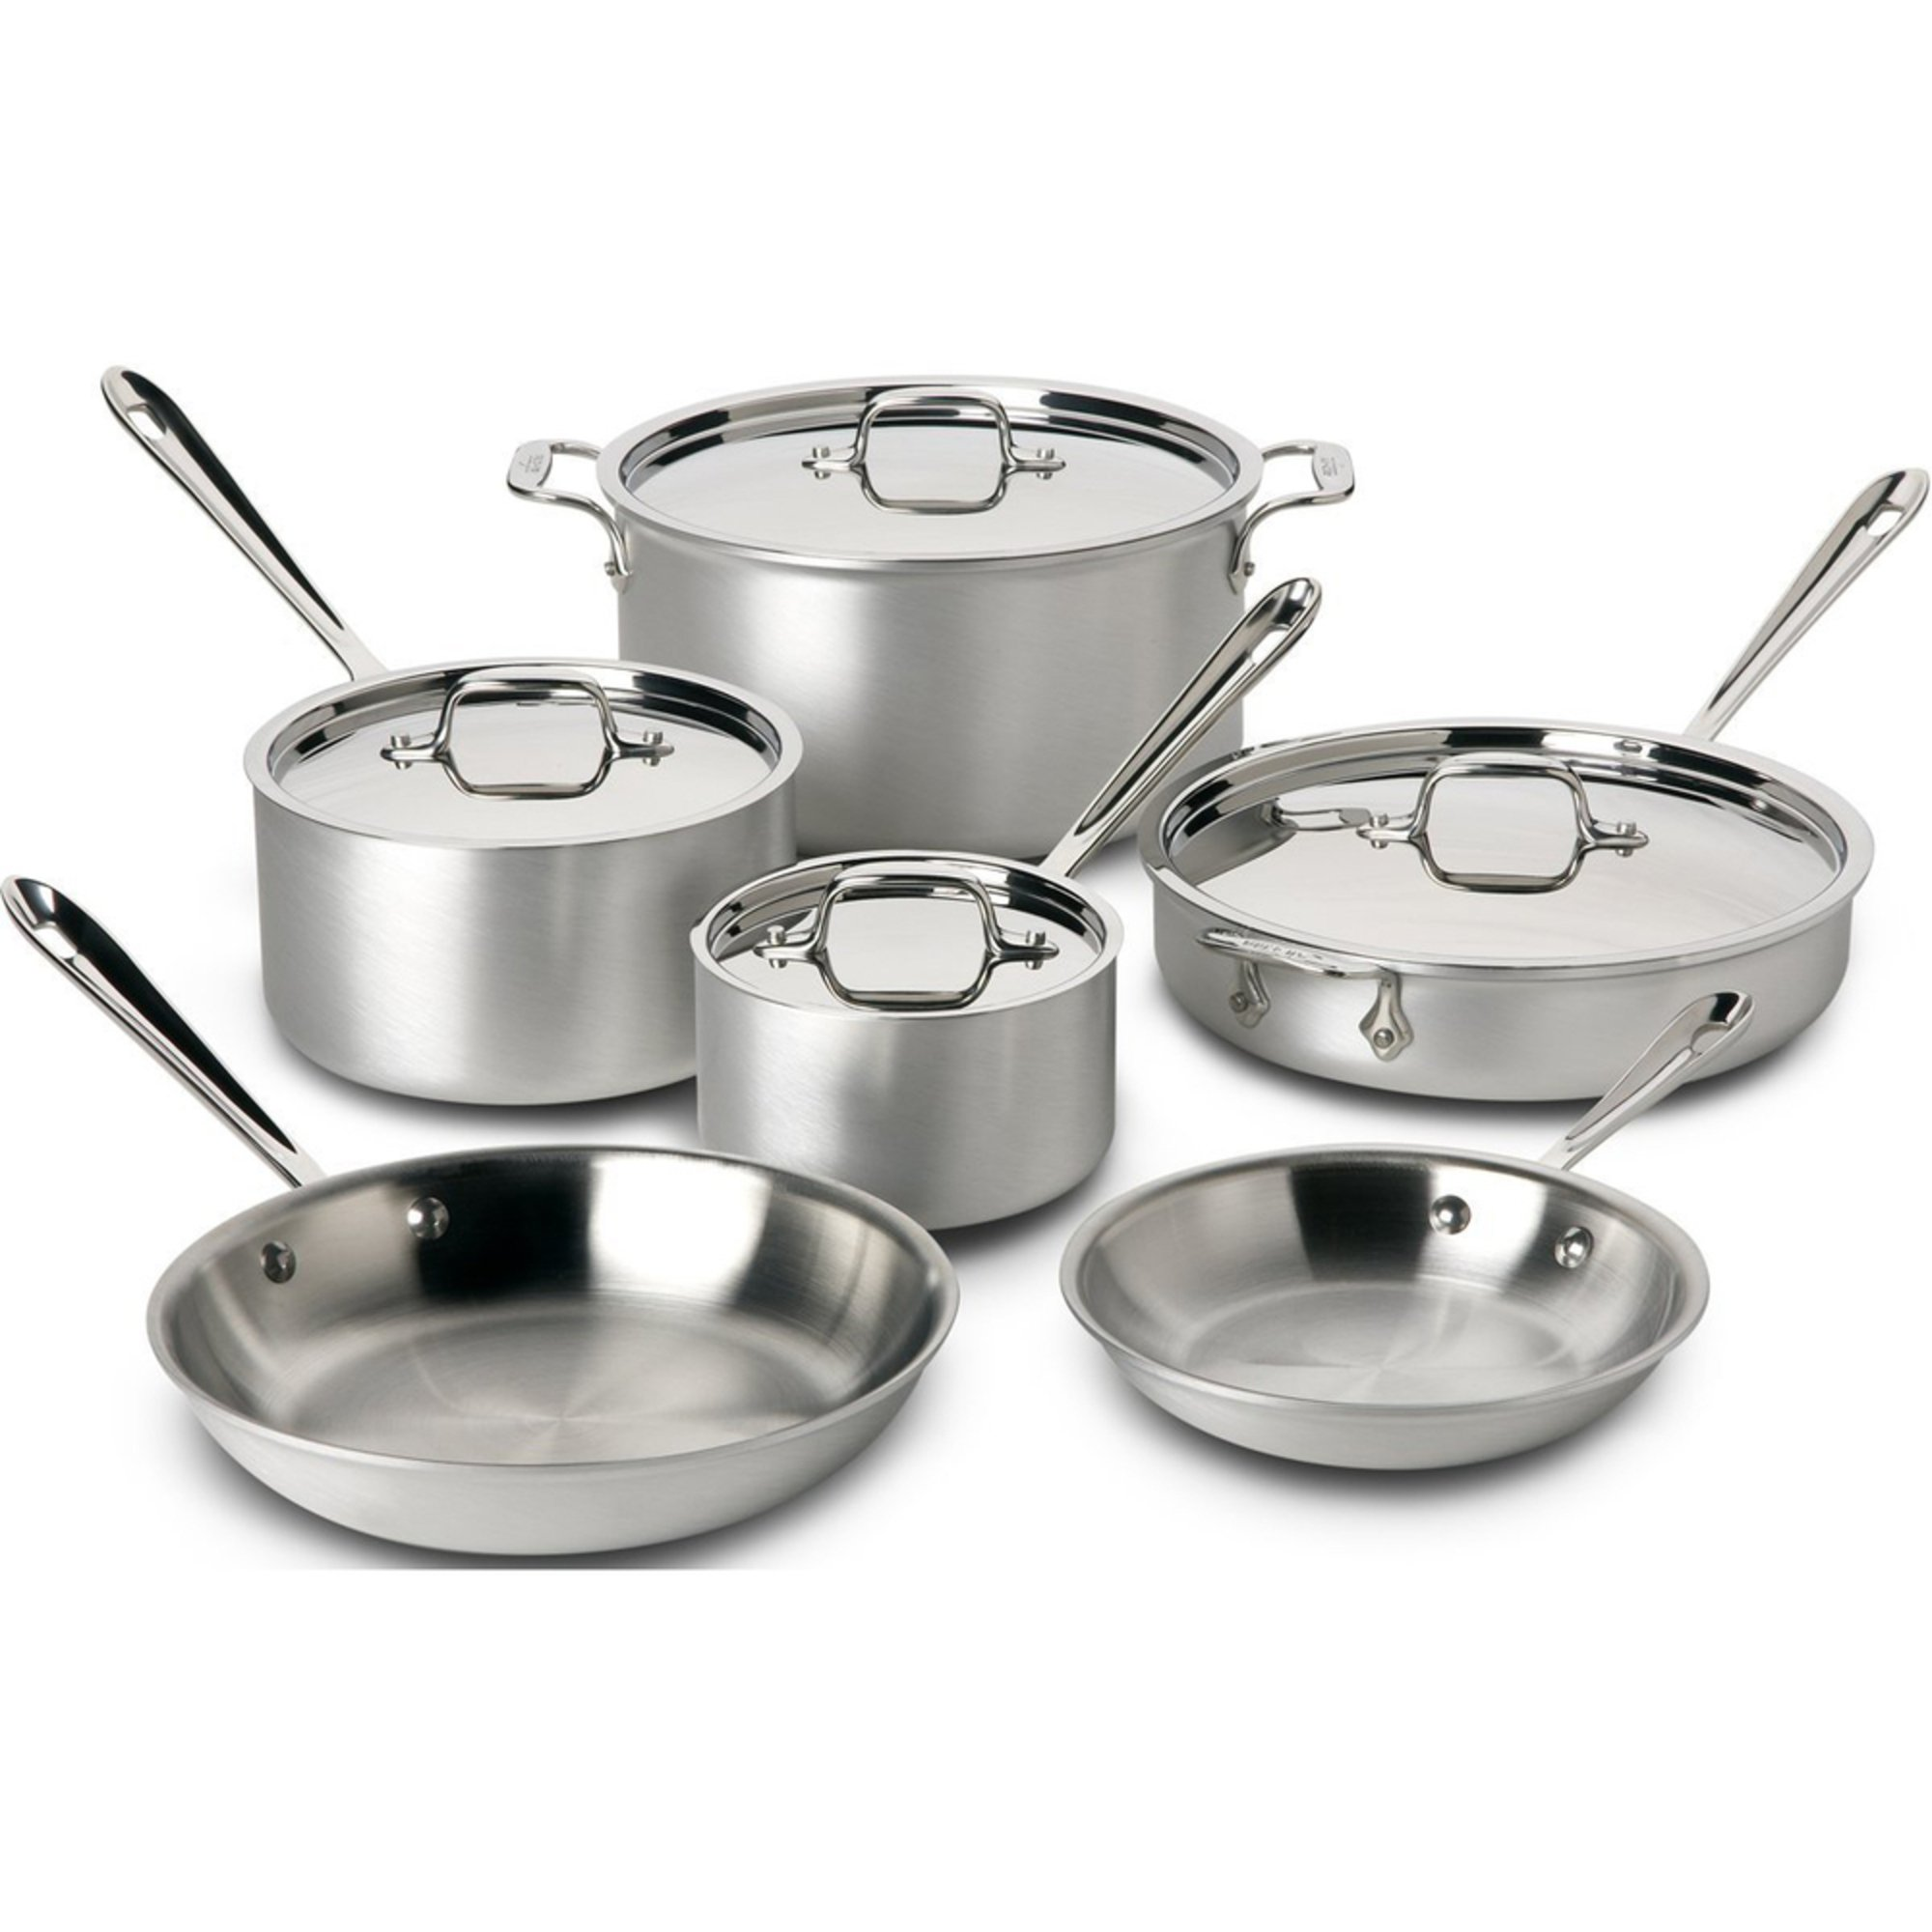 All Clad D5 Brushed Stainless Steel 10 Piece Cookware Set Search